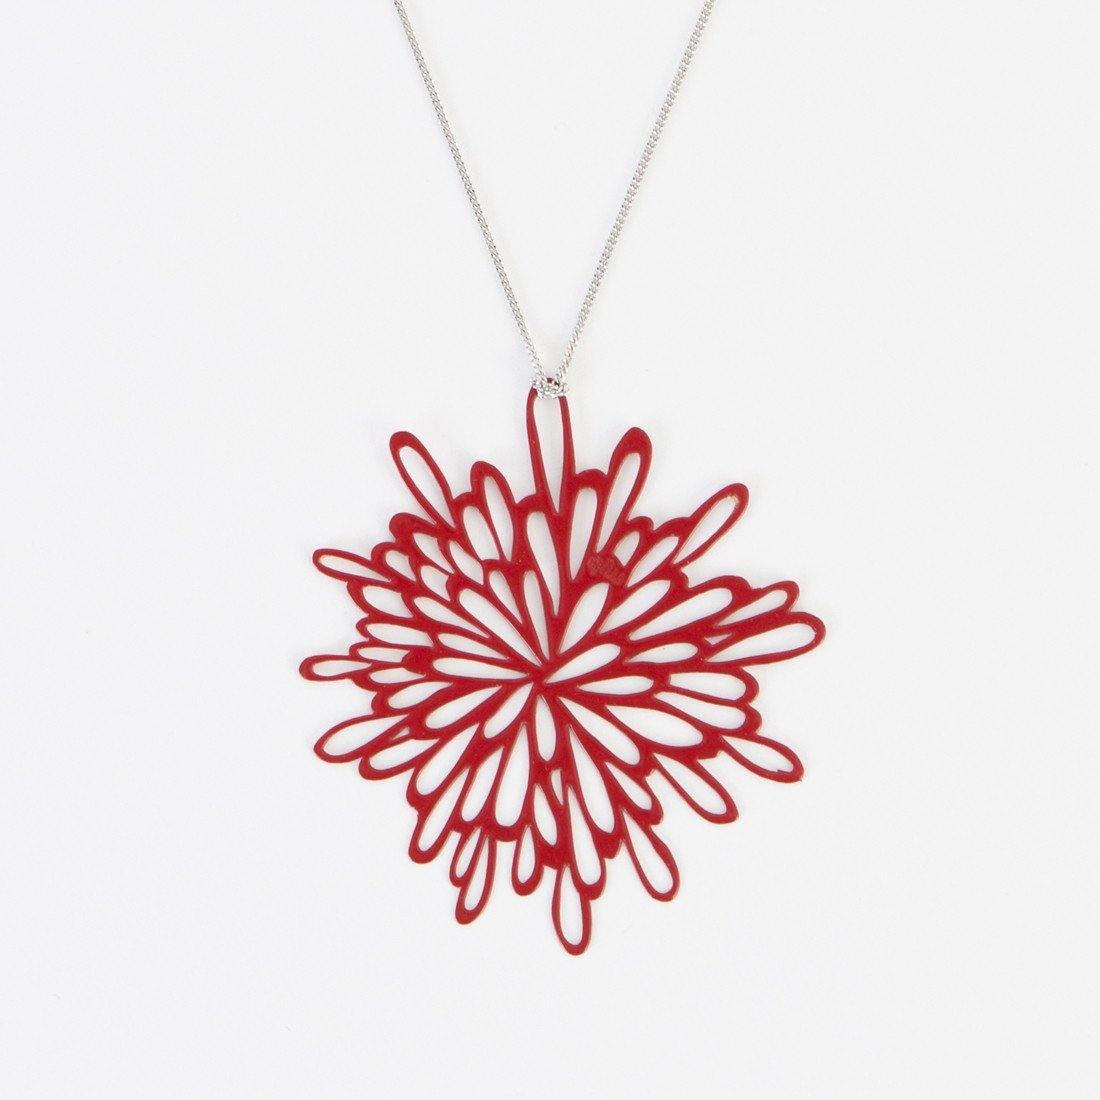 Starburst Pop-Out Pendant - Pop-Out Jewelry